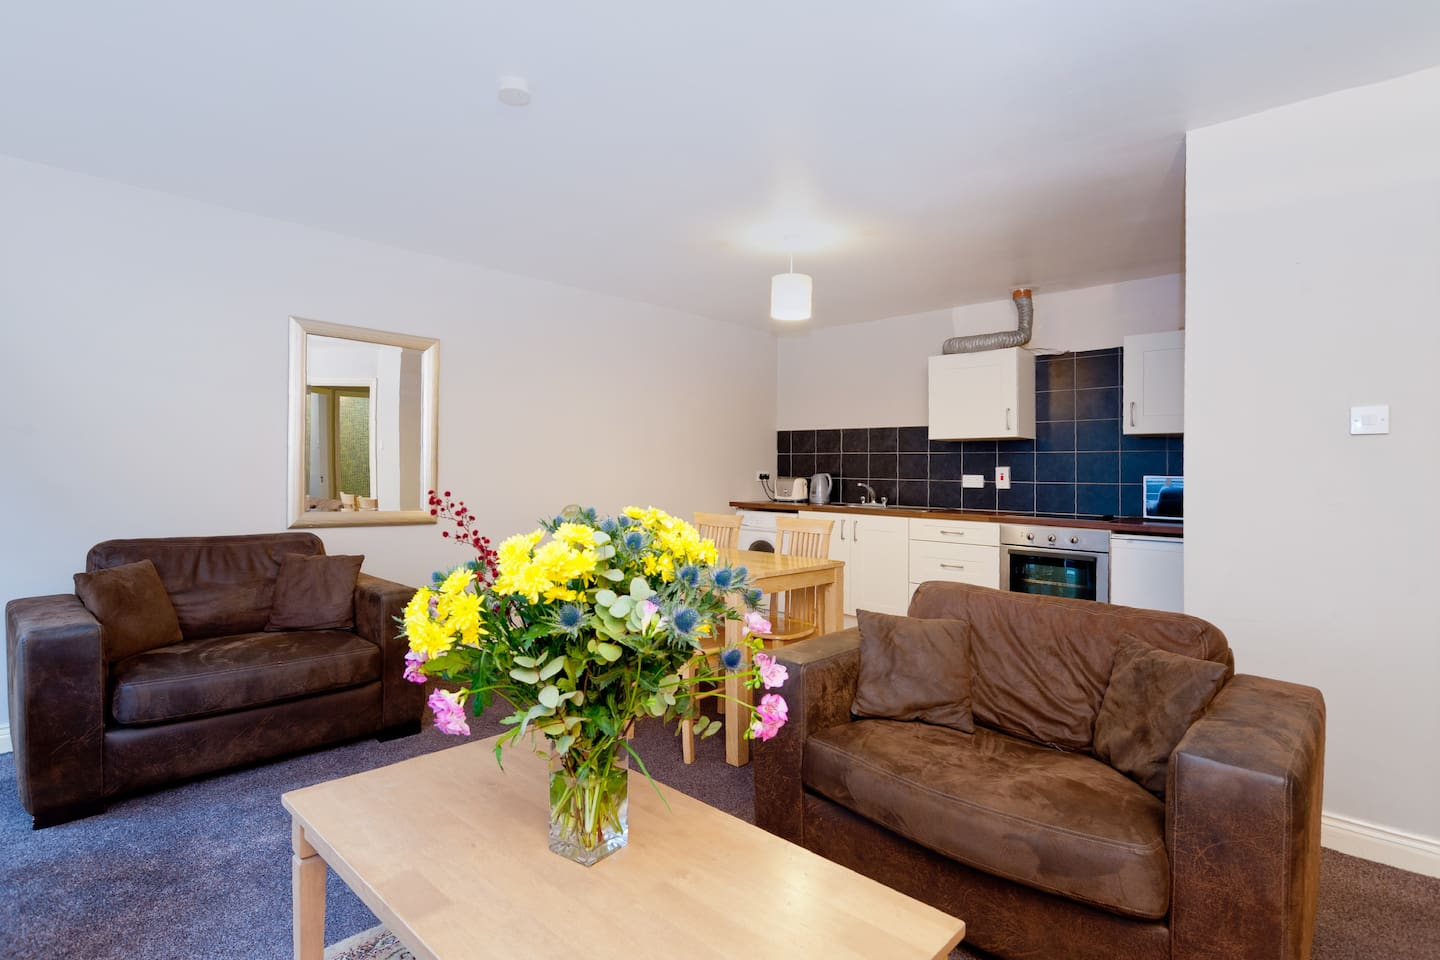 The spacious sitting room has plenty of opportunity for entertaining.